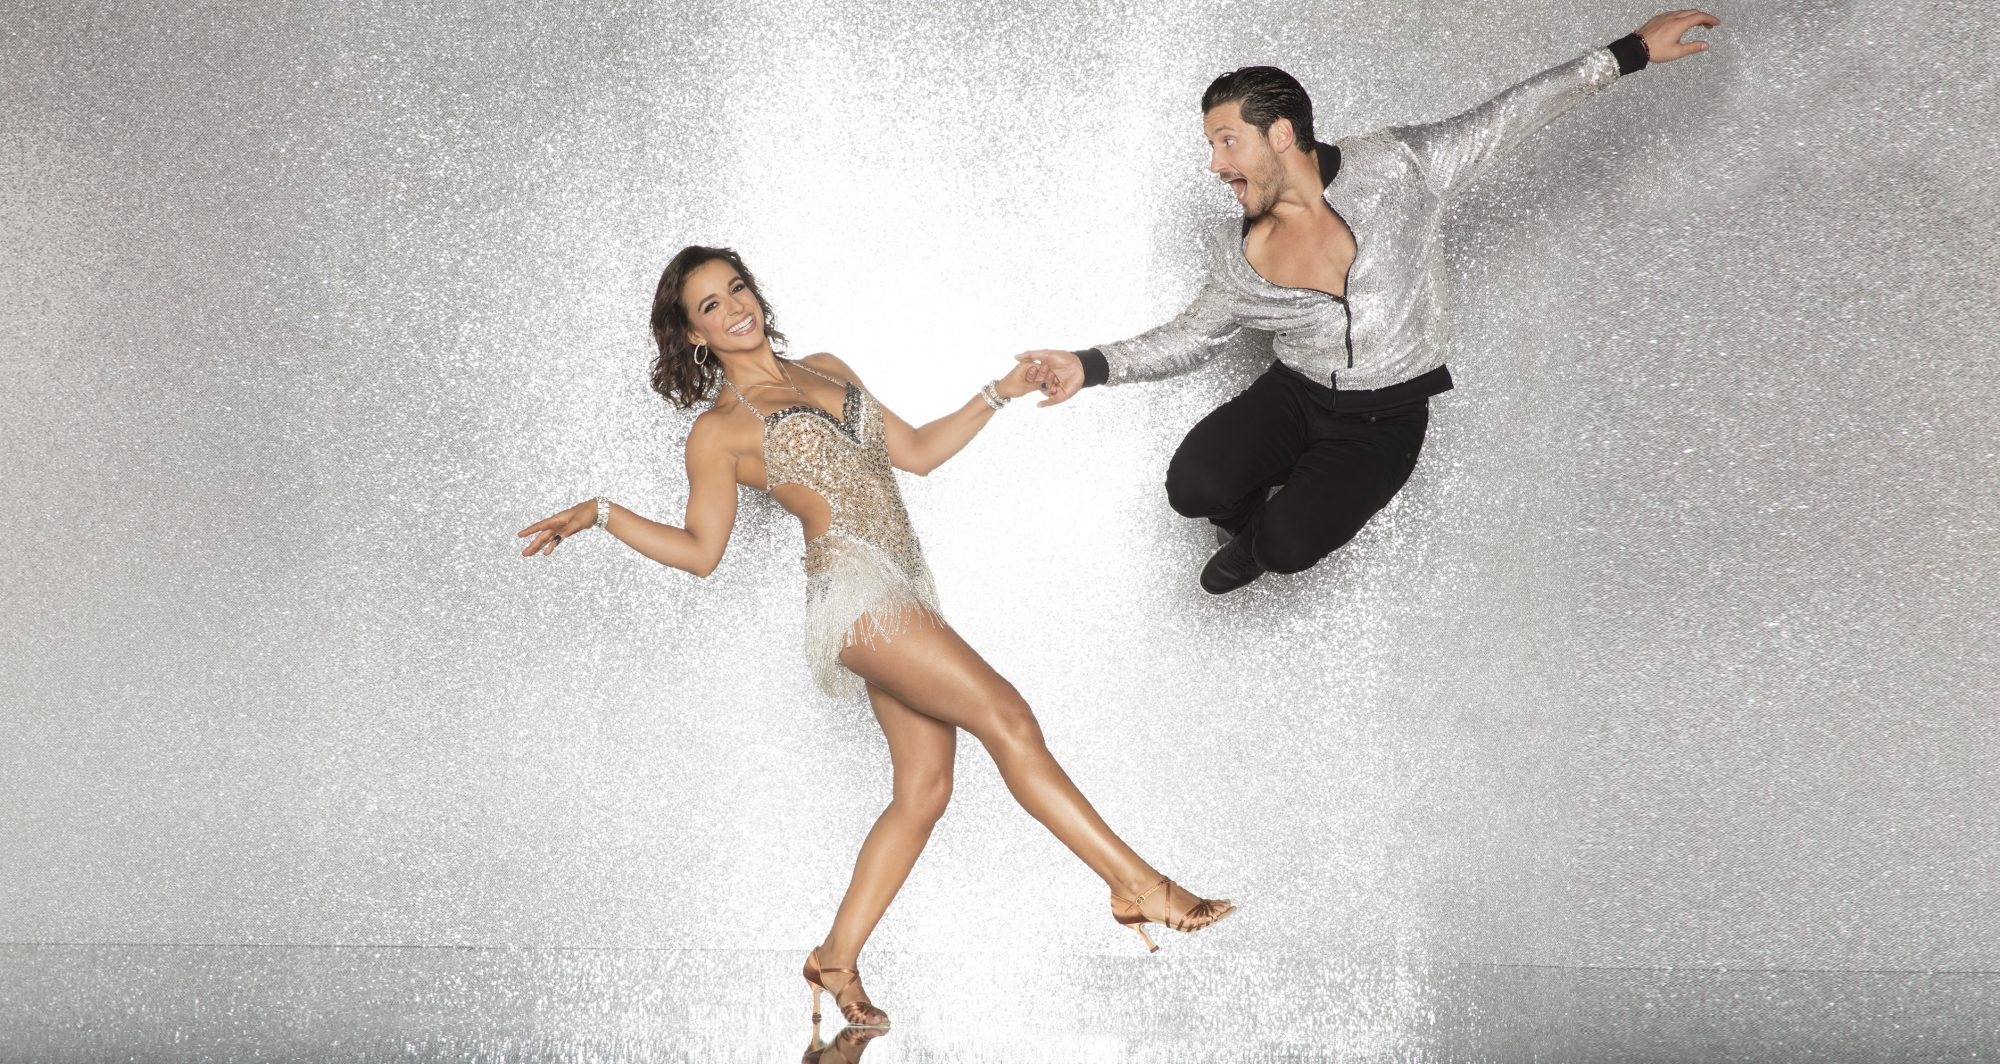 DWTS' Victoria Arlen Shares Emotional Video About Re-Learning to Talk & Walk After 4 Years in a Vegetative State